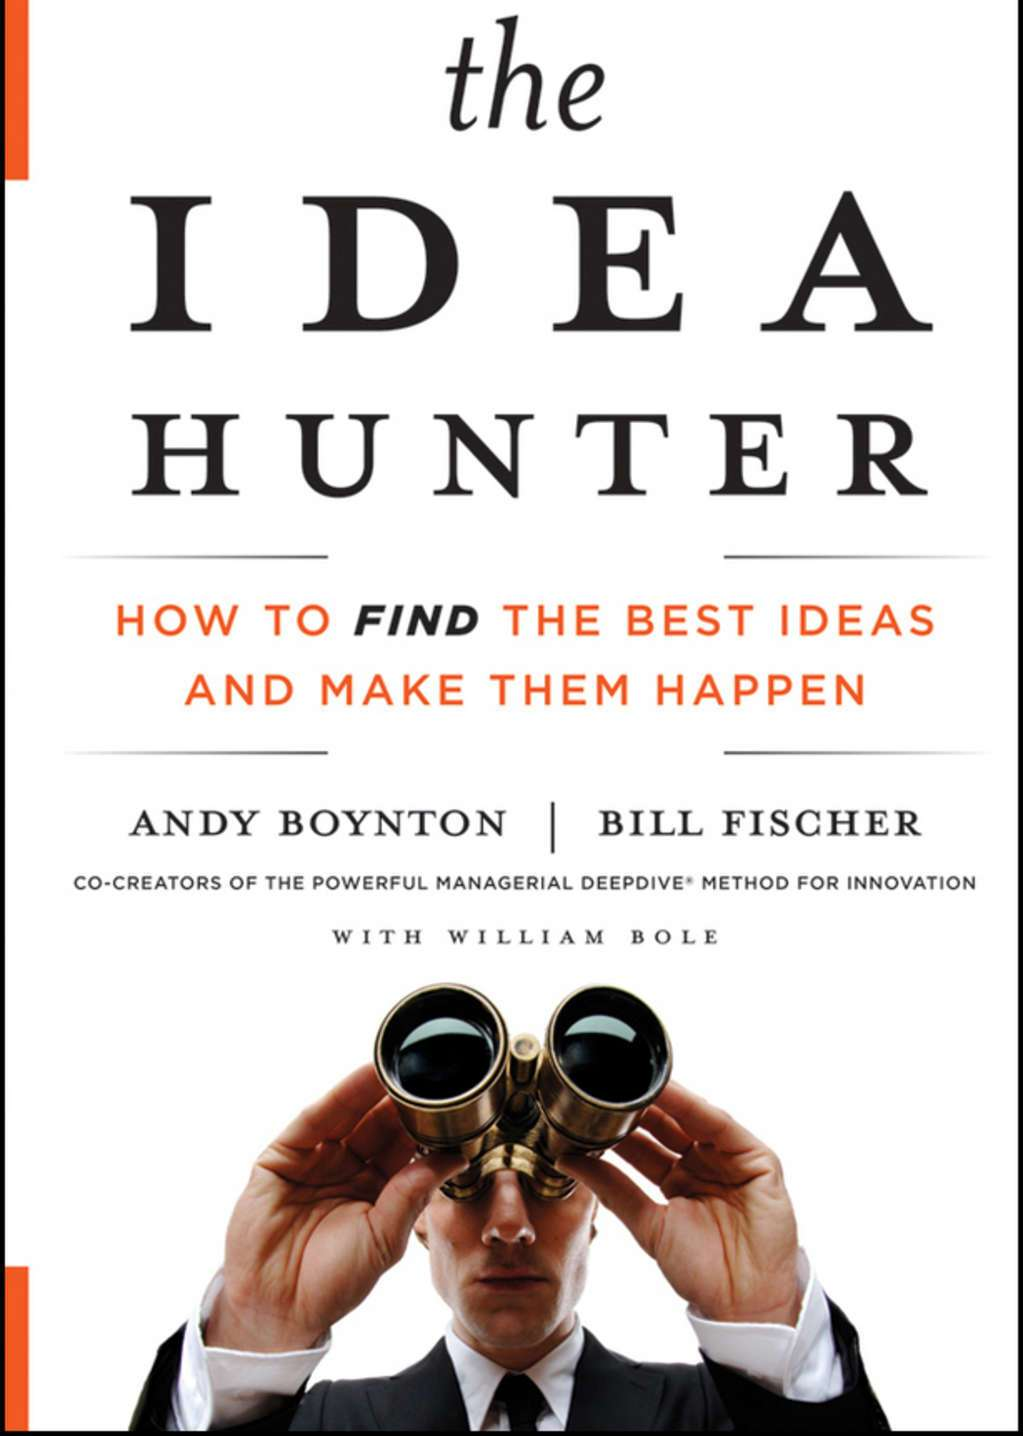 The Idea Hunter: How to Find the Best Ideas and Make Them Happen - Boynton Andy,  Bill Fischer, William Bole - reviews, quotes, summary